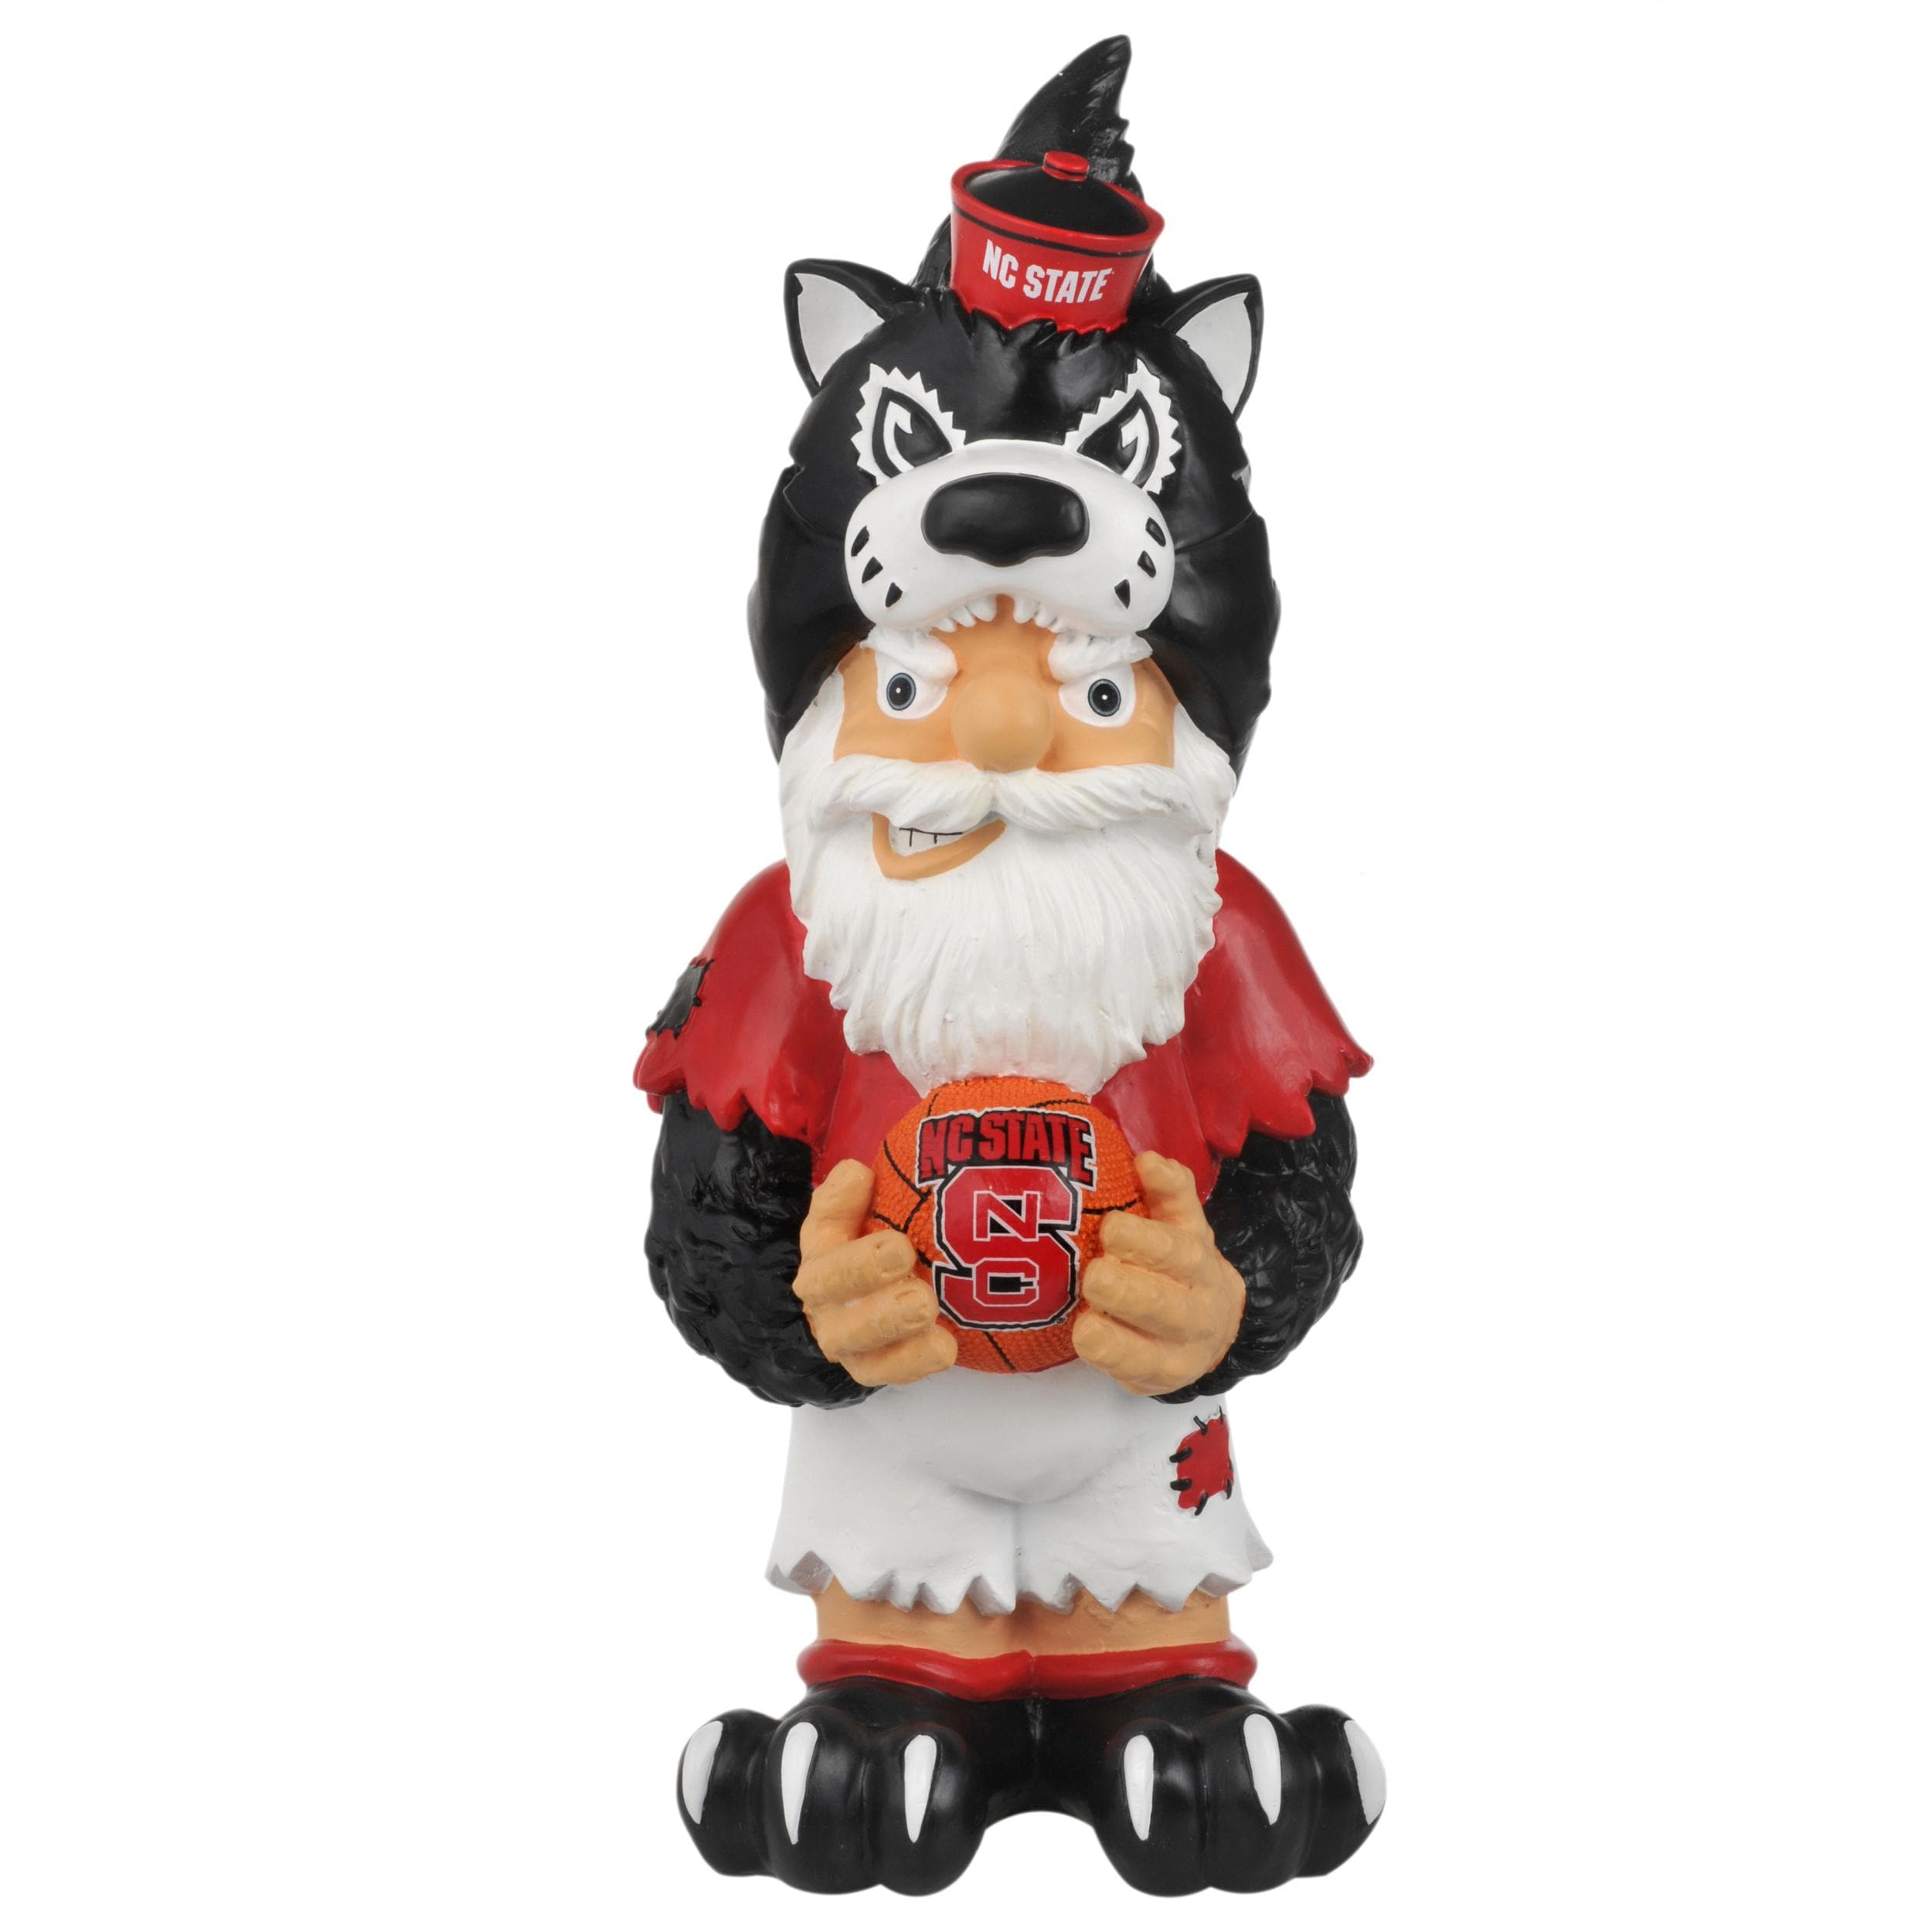 North Carolina State Wolfpack 11-inch Thematic Garden Gnome - Thumbnail 1